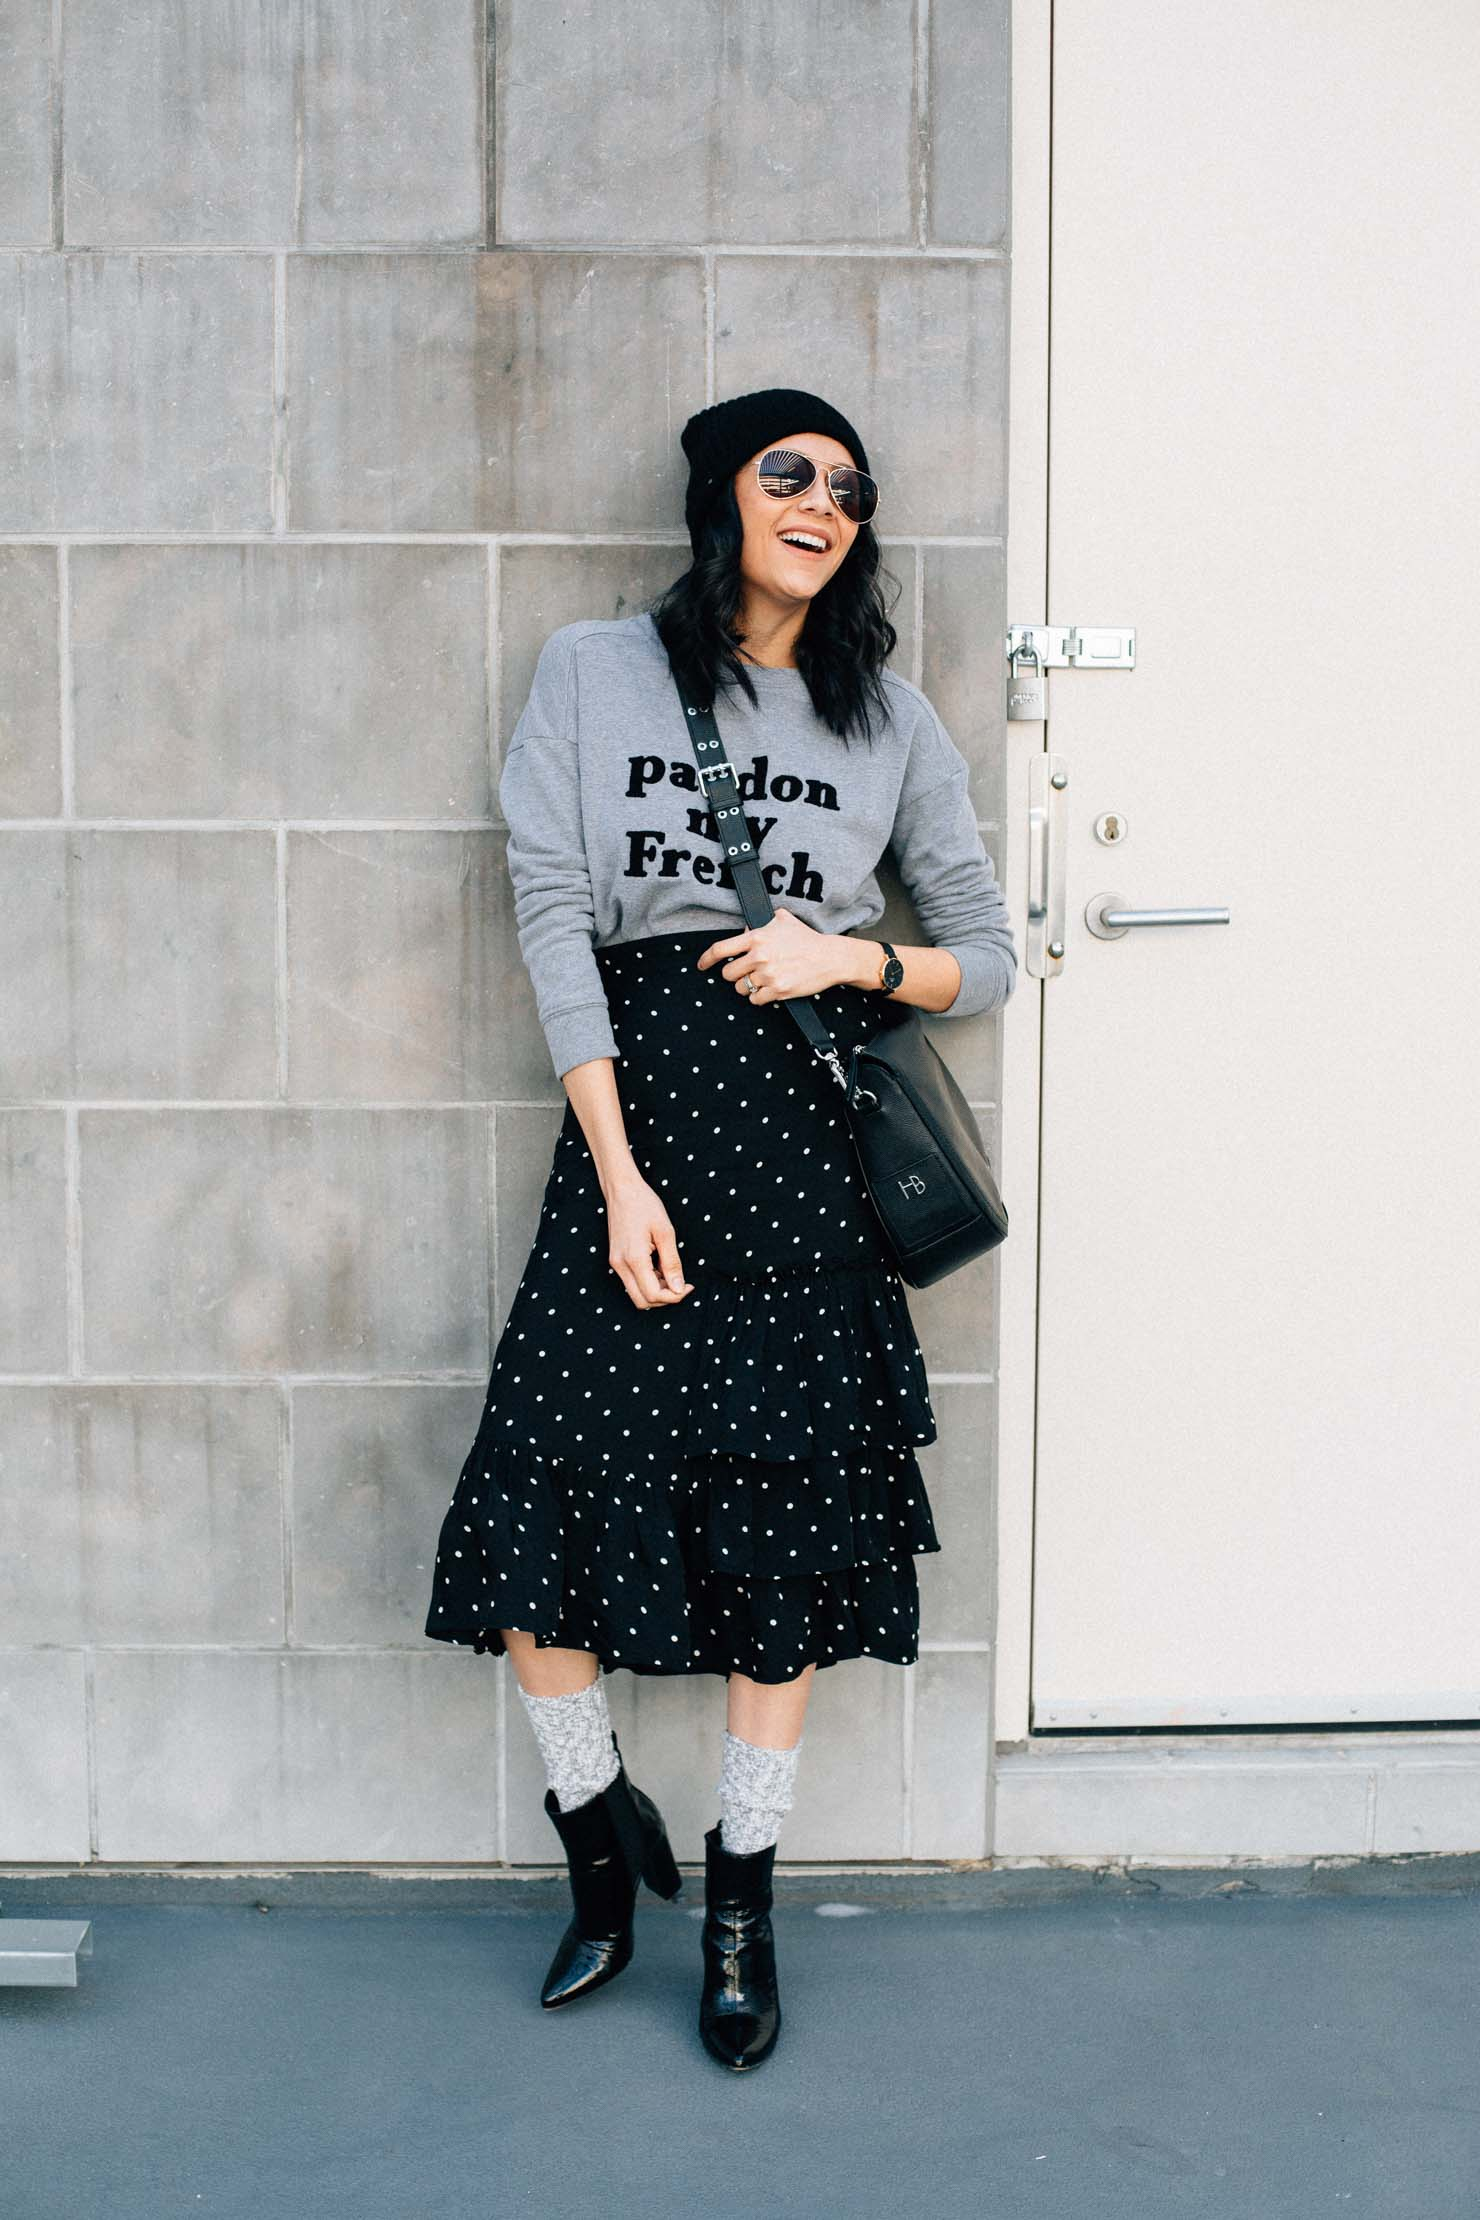 Lilly Beltran of Daily Craving wears boots & socks with a midi length polka dot skirt for an effortless chic look.